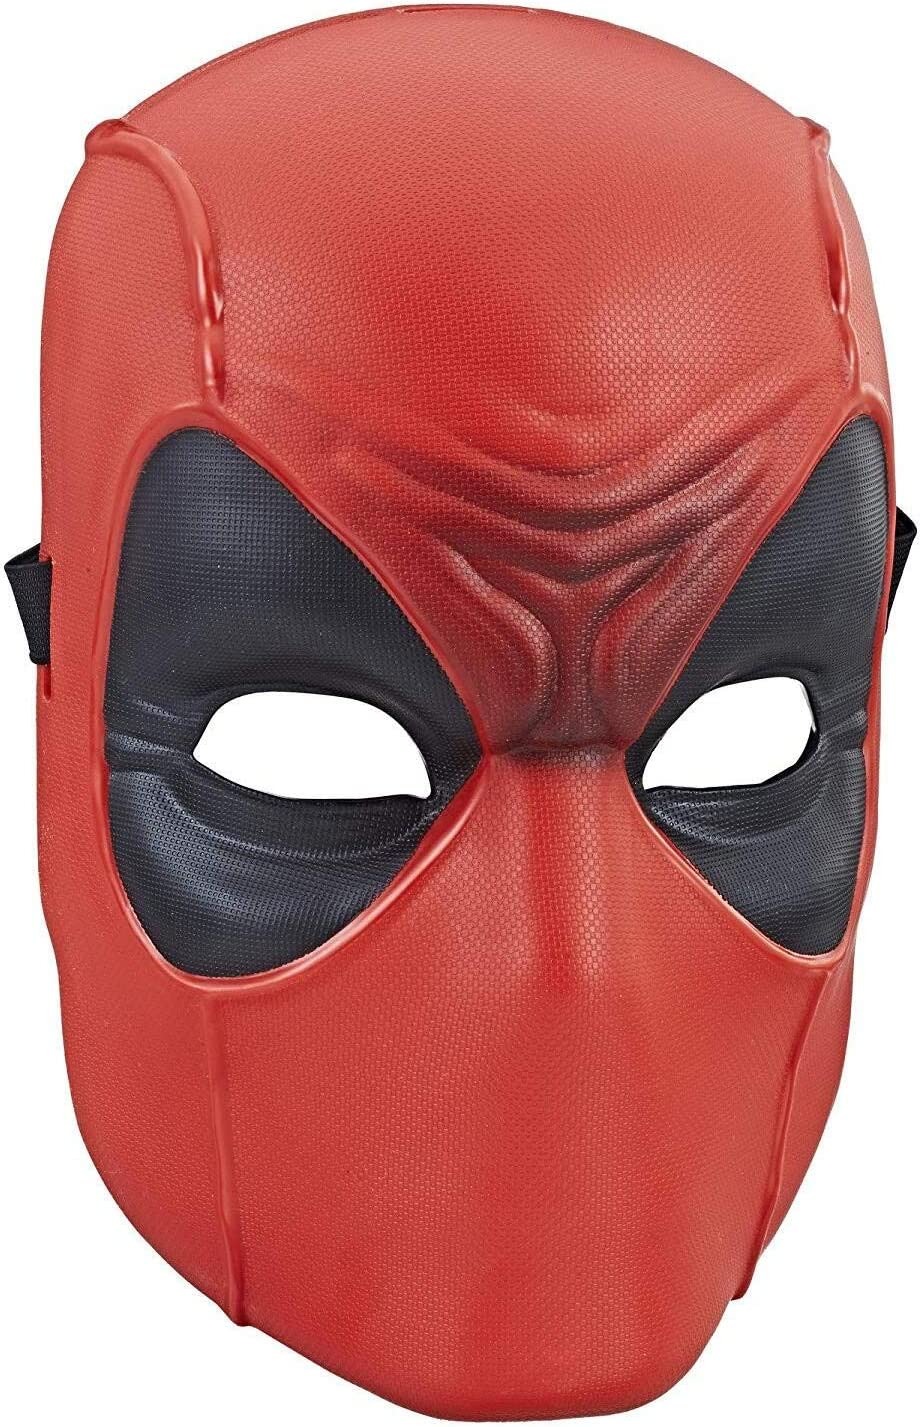 Amazon Com Marvel Deadpool Face Hider Mask Toys Games